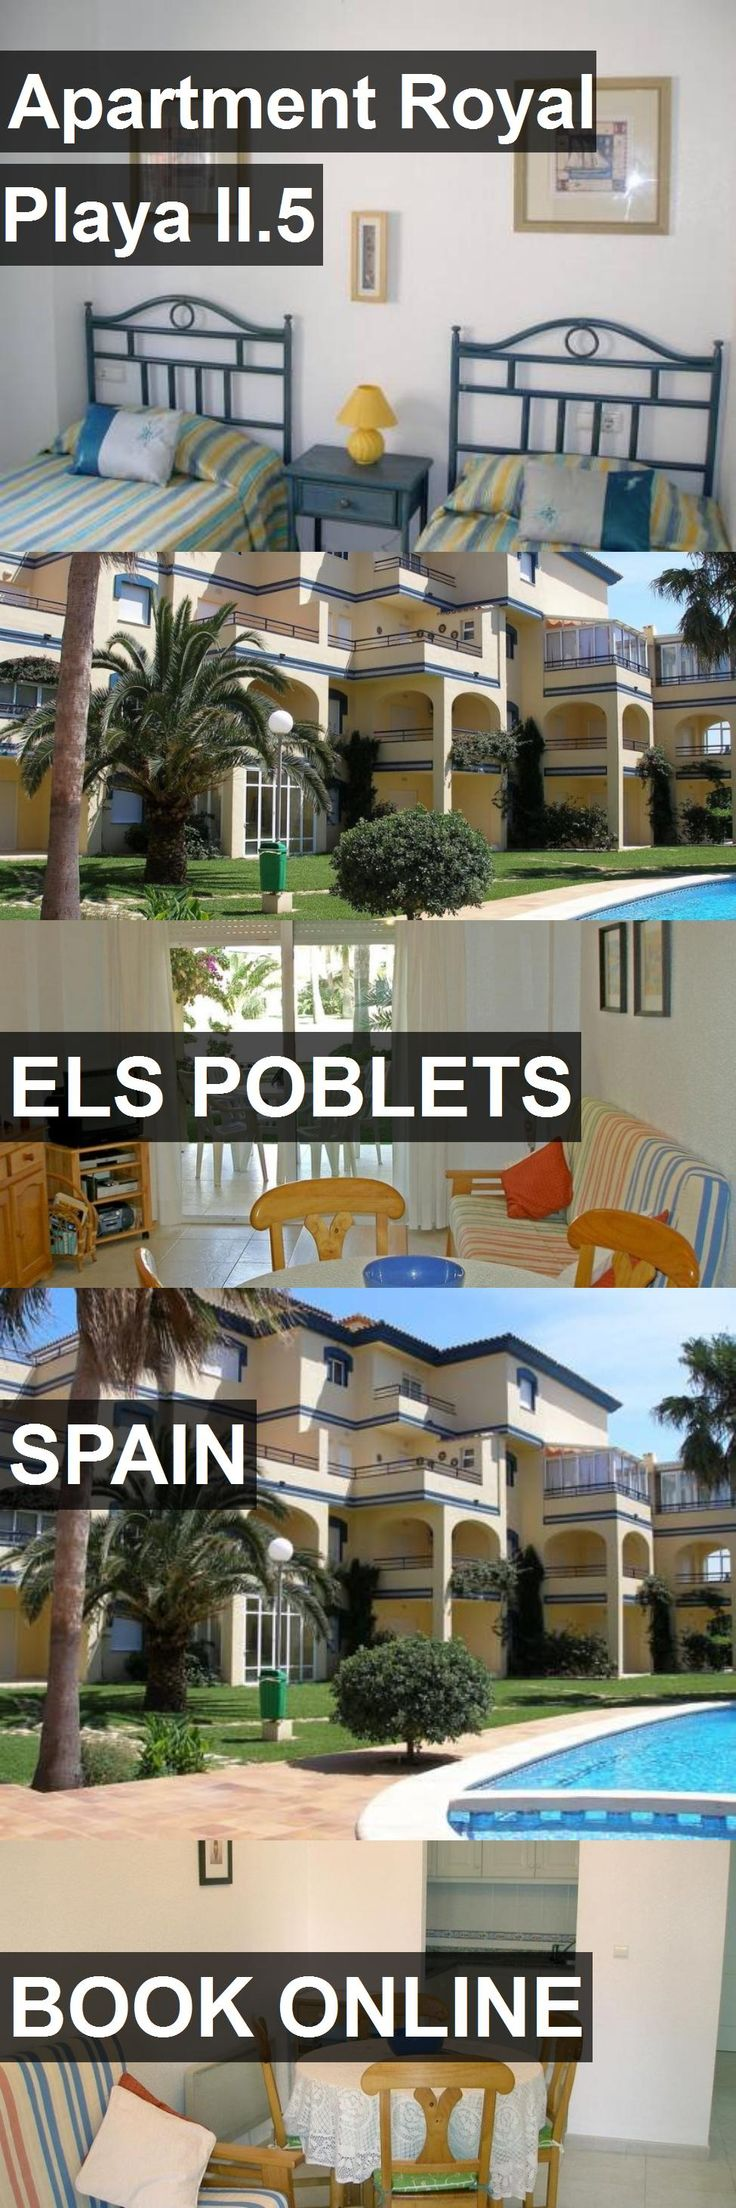 Hotel Apartment Royal Playa II.5 in Els Poblets, Spain. For more information, photos, reviews and best prices please follow the link. #Spain #ElsPoblets #ApartmentRoyalPlayaII.5 #hotel #travel #vacation